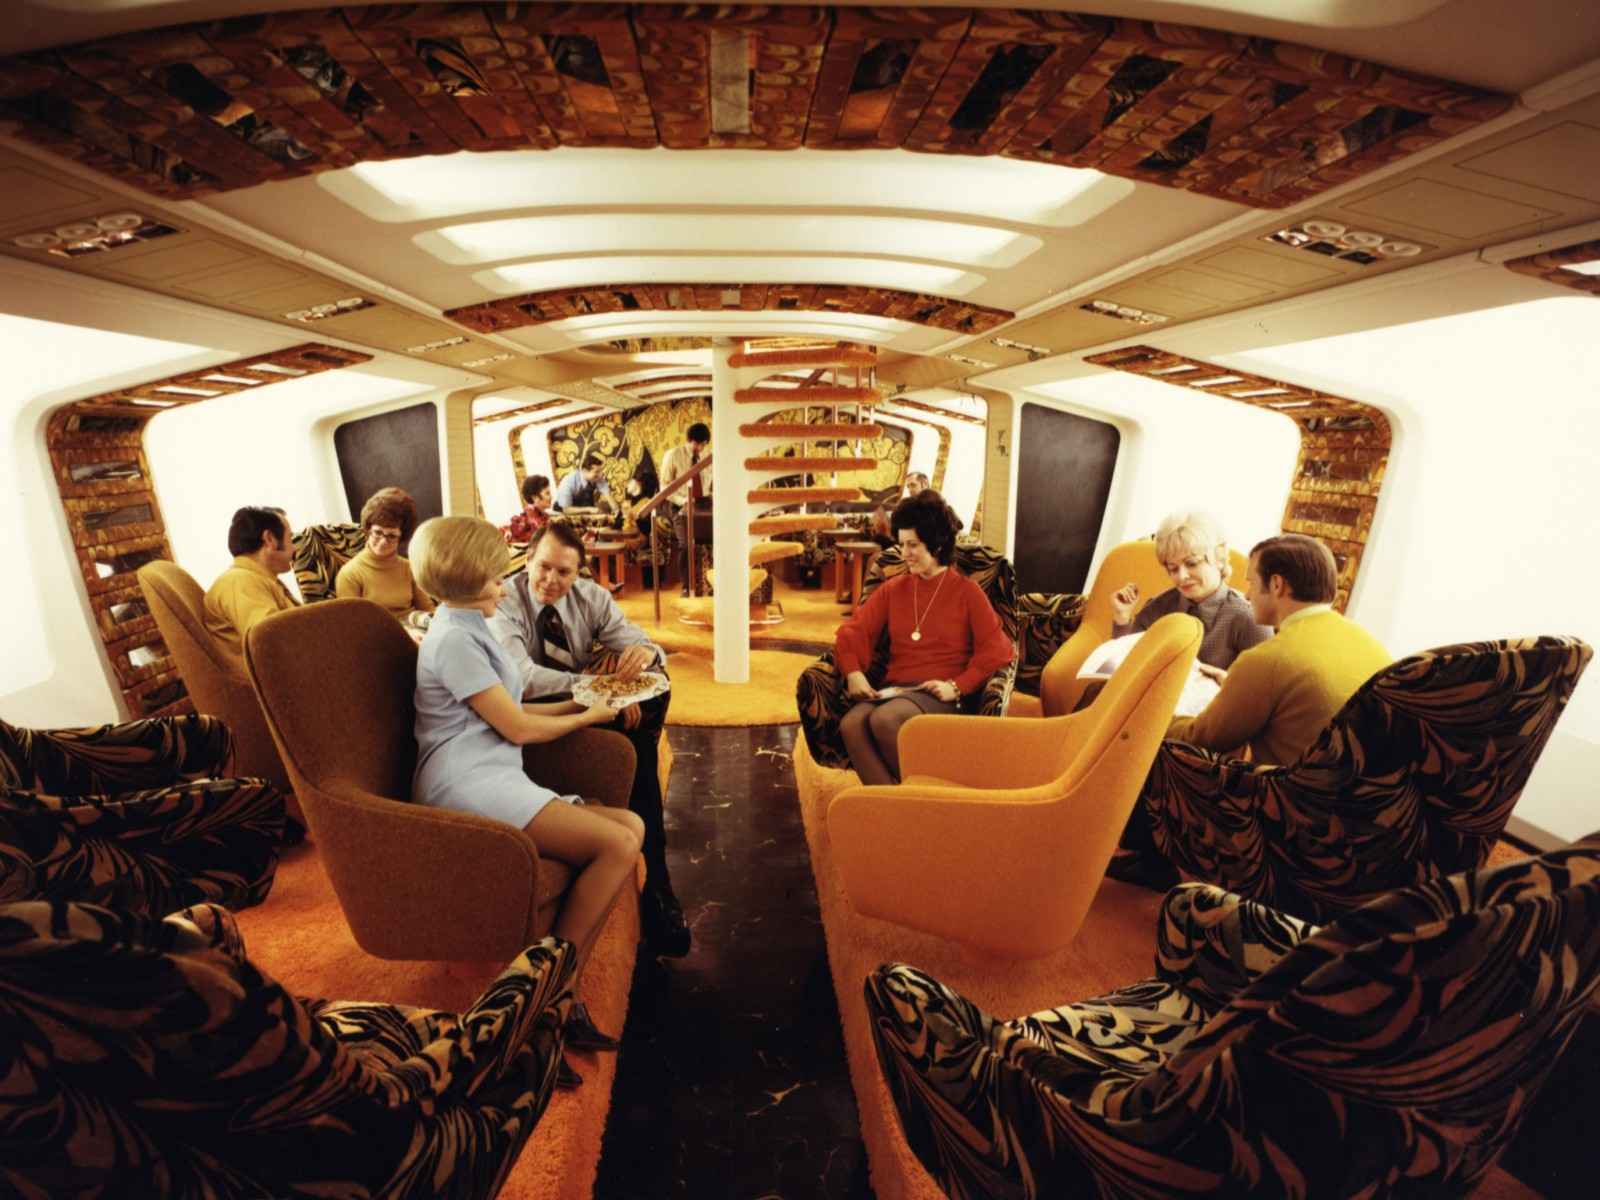 Boeing's lower deck Tiger Lounge for its 747 never took off.